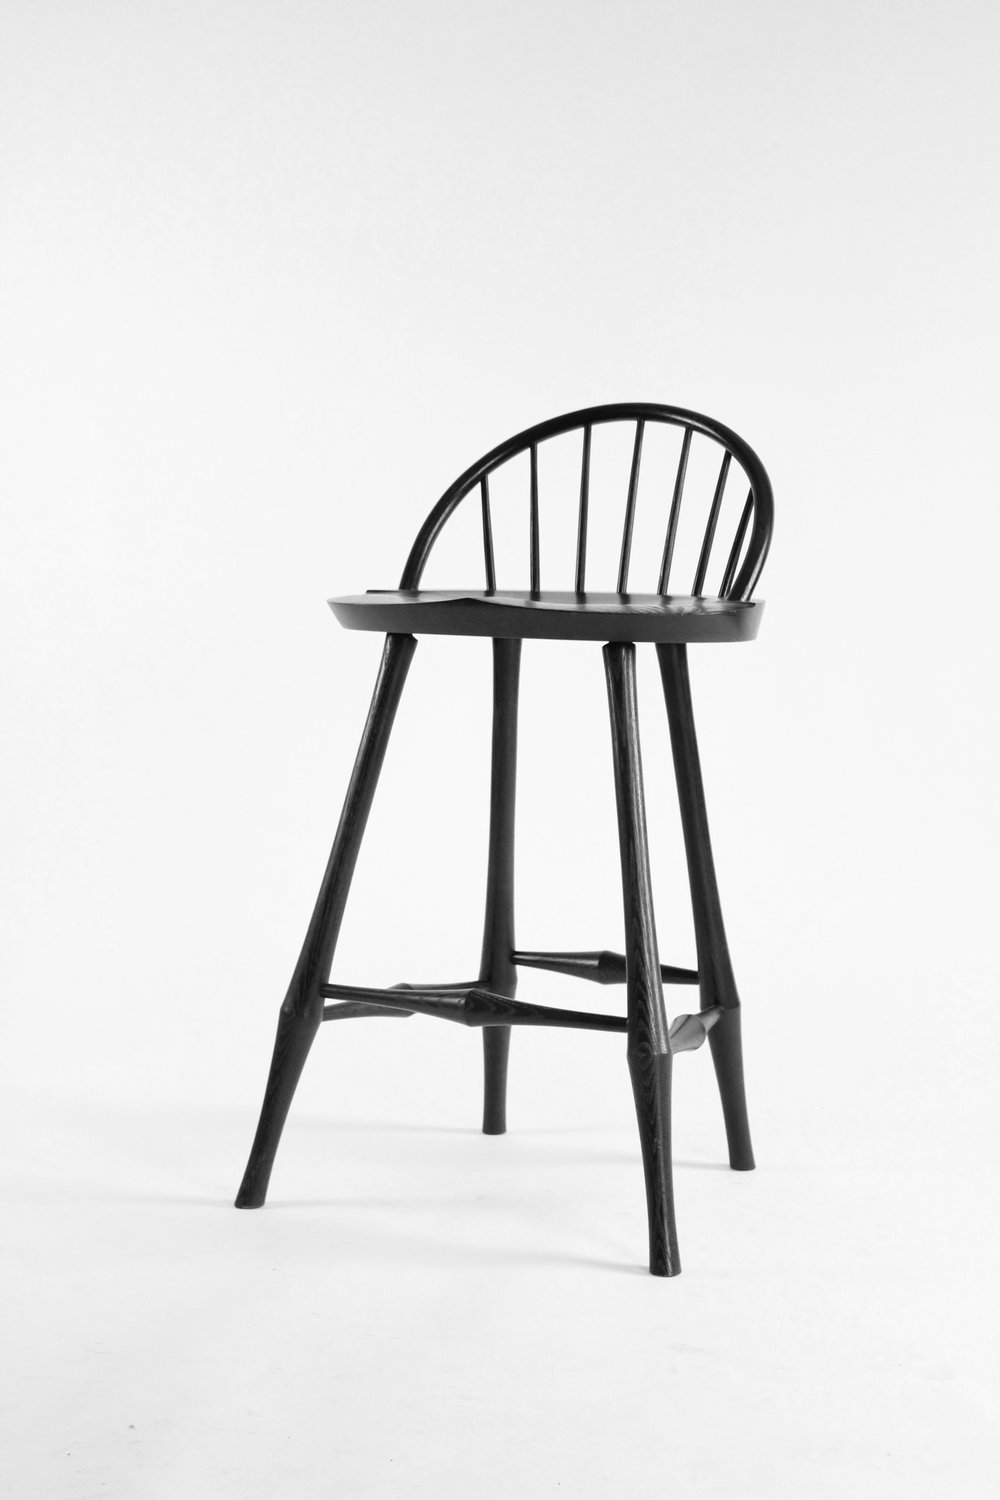 O&G Studio Wayland Half-Bow Back Bar Counter Stool Windsor Contemporary Dining Chair Side Chair Stain on Ash